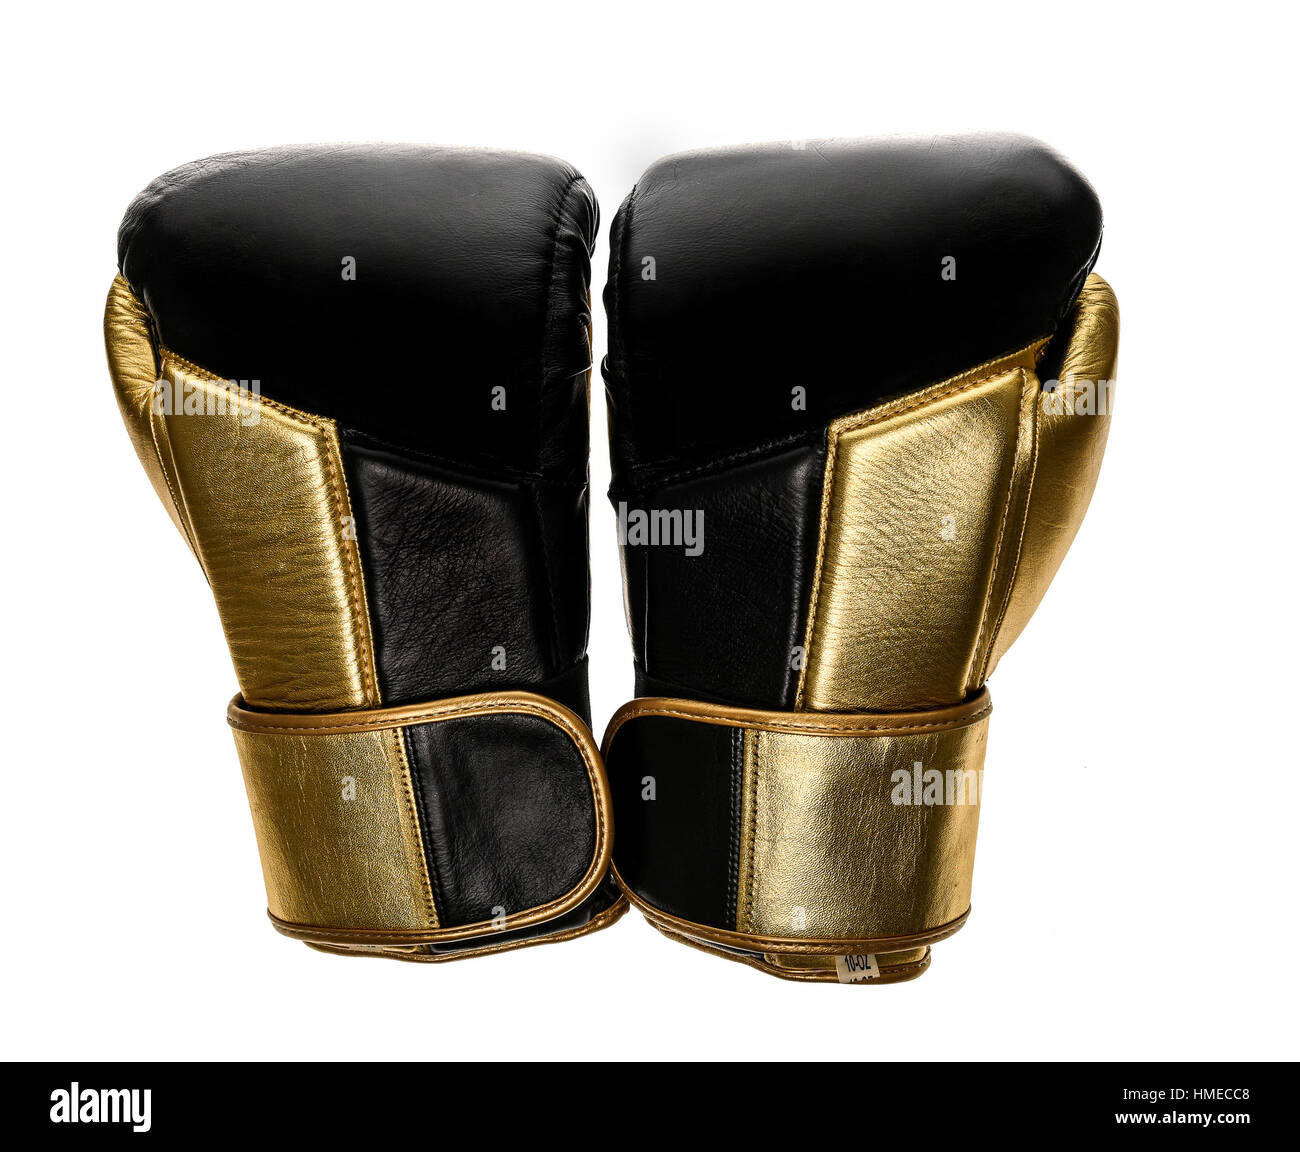 Full Contact Combat Sport >> Golden And Black Boxing Gloves Isolated On White Background Sport